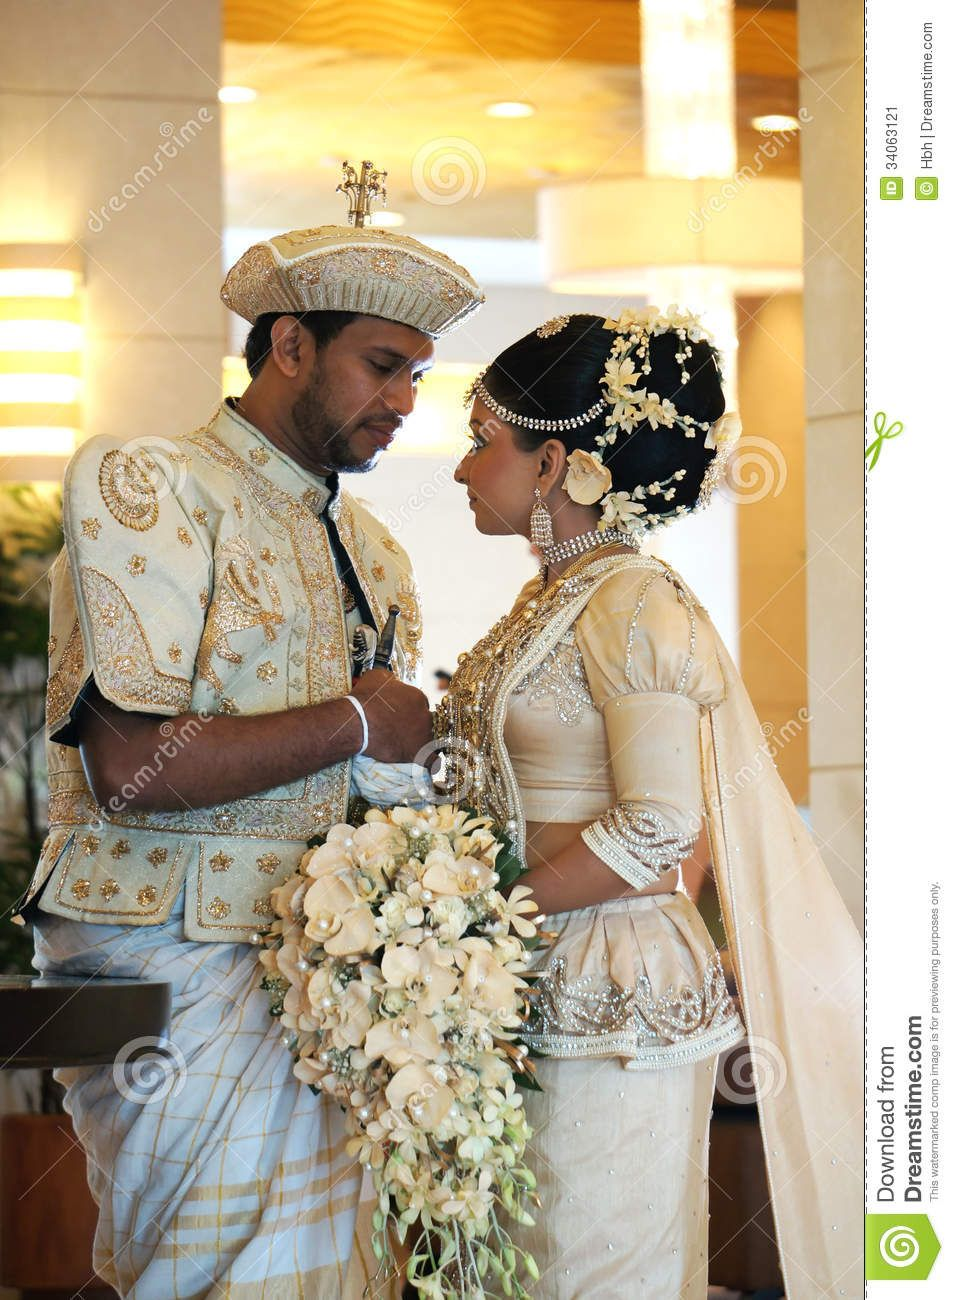 Sri lankan bride and groom with a wedding bouquet in kandy city sri lankan bride and groom with a wedding bouquet in kandy city description from dreamstime izmirmasajfo Image collections